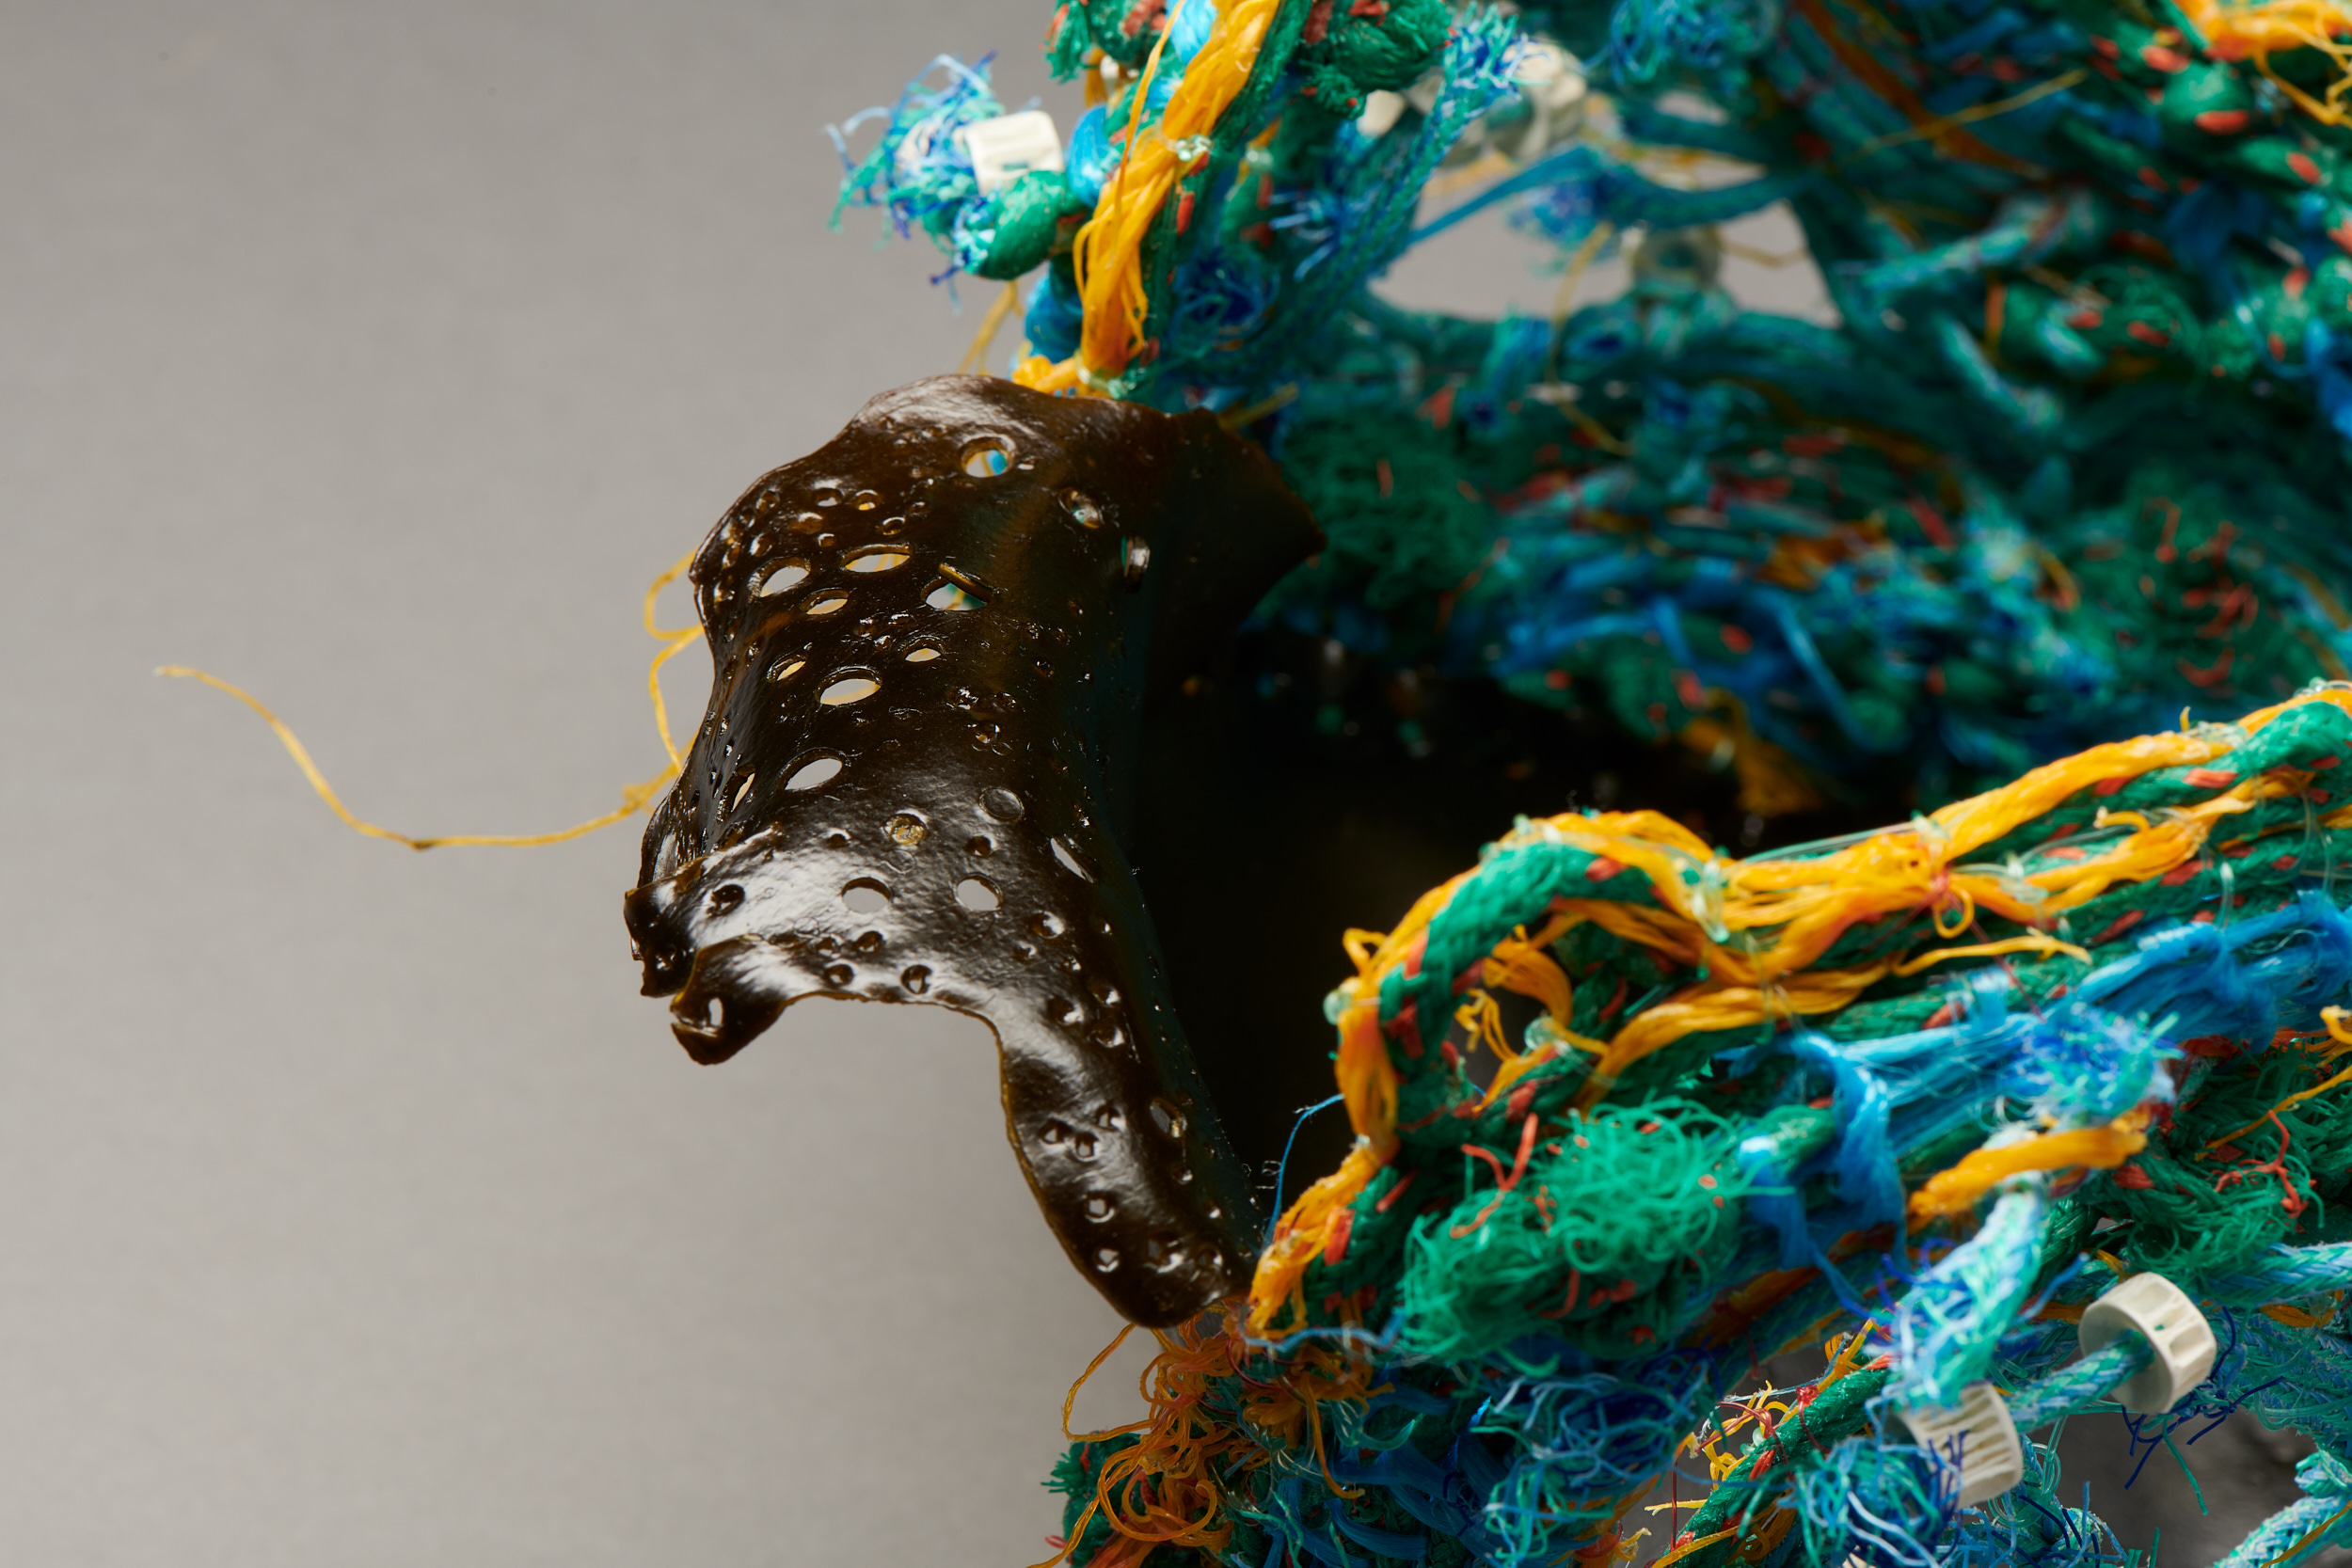 Beverly Meldrum, (detail)  Washed Up,  2018, ghost net, bailing twine, shark vertebrae, fishing line, kelp, 190 x 170 x 150mm. Photography Fred Kroh